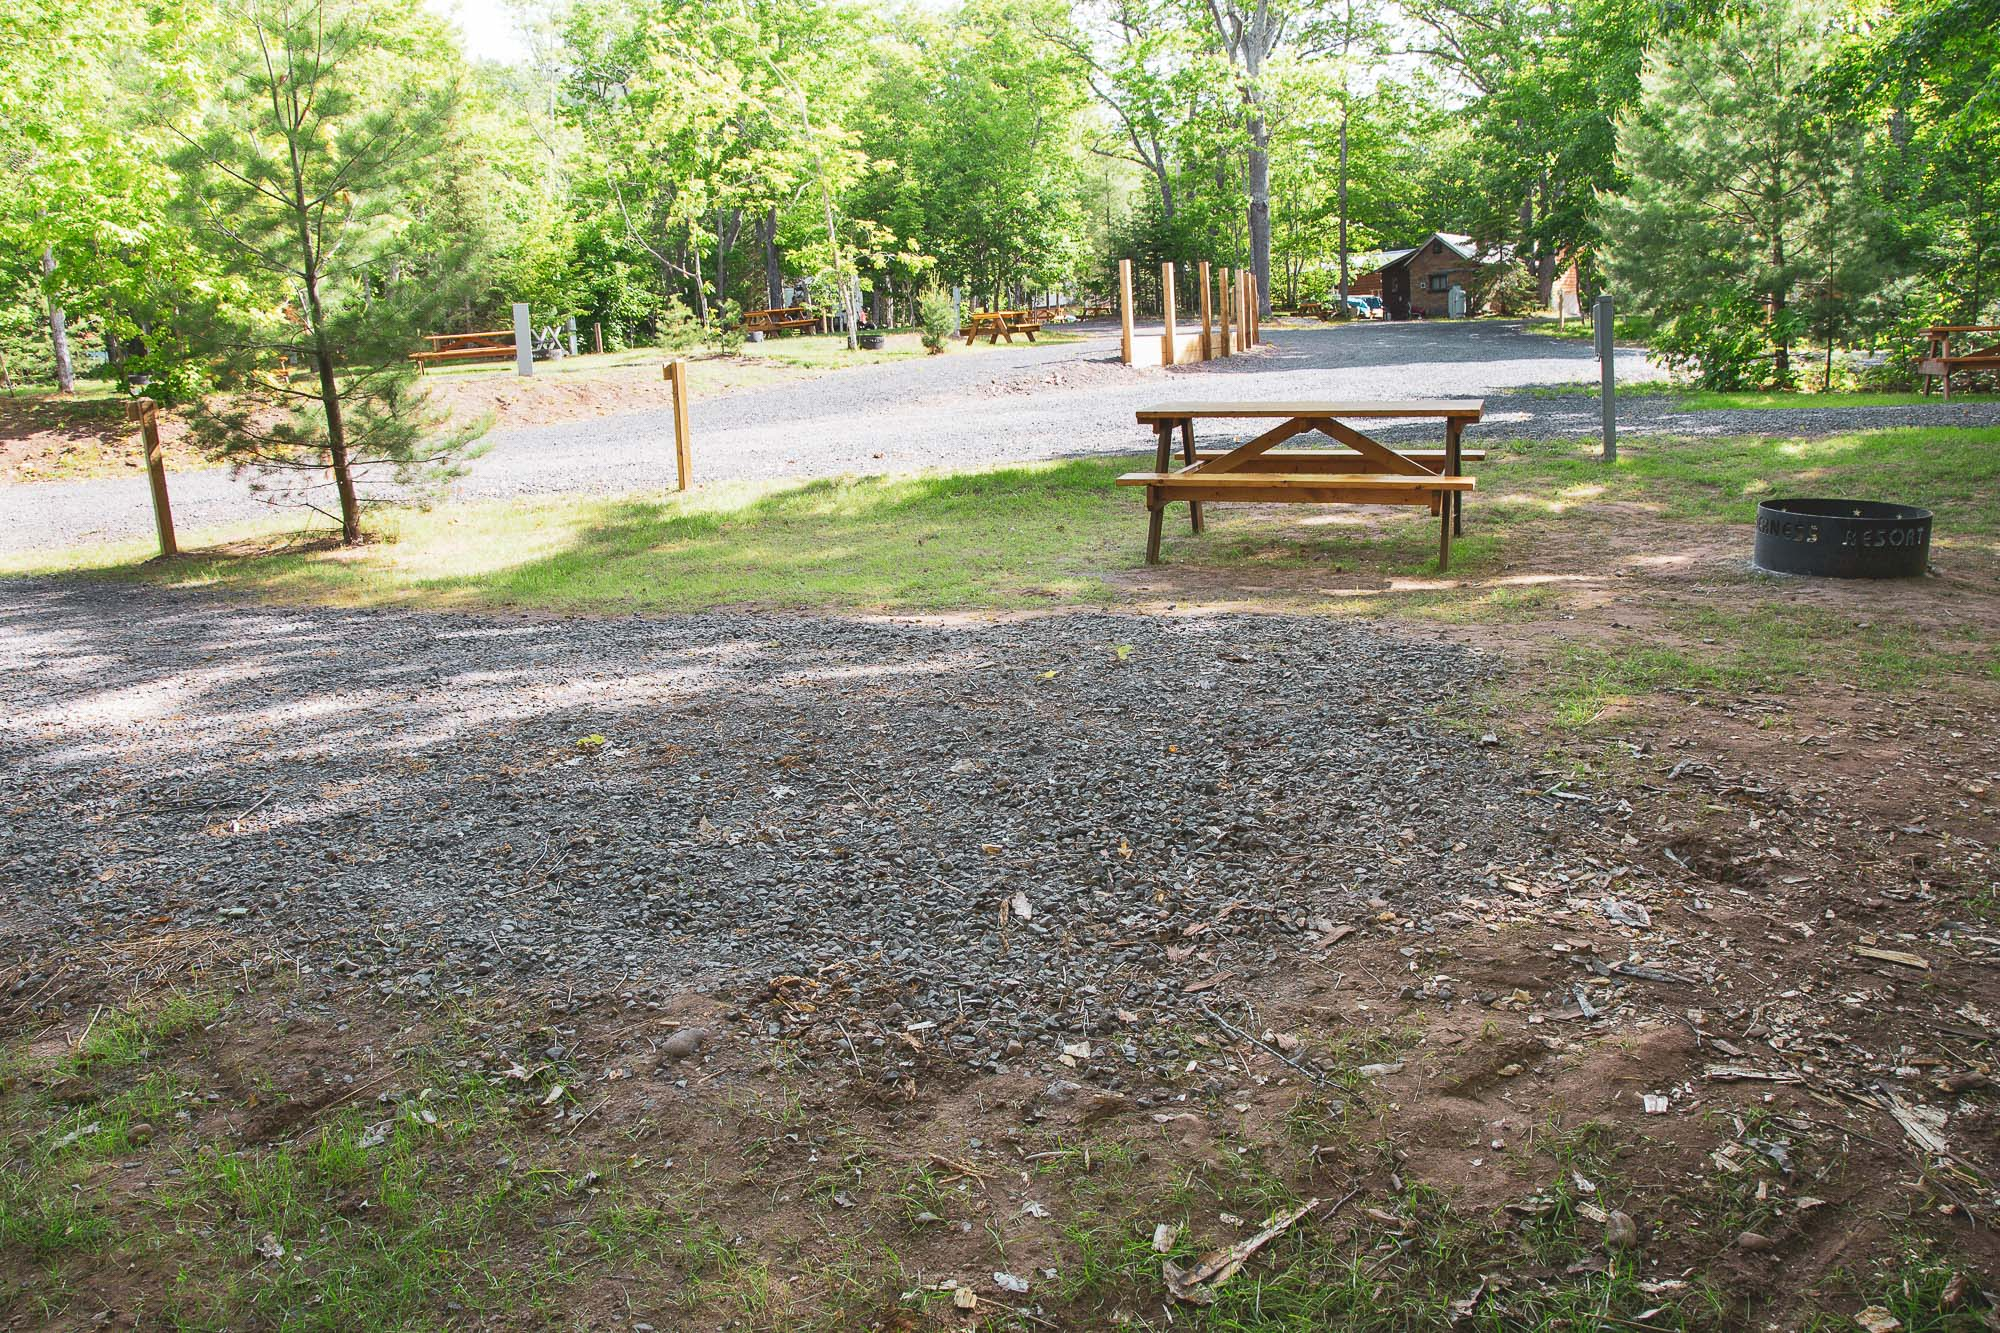 Photo of Campground Site 13 at the Wilderness Resort in Lac La Belle Michigan